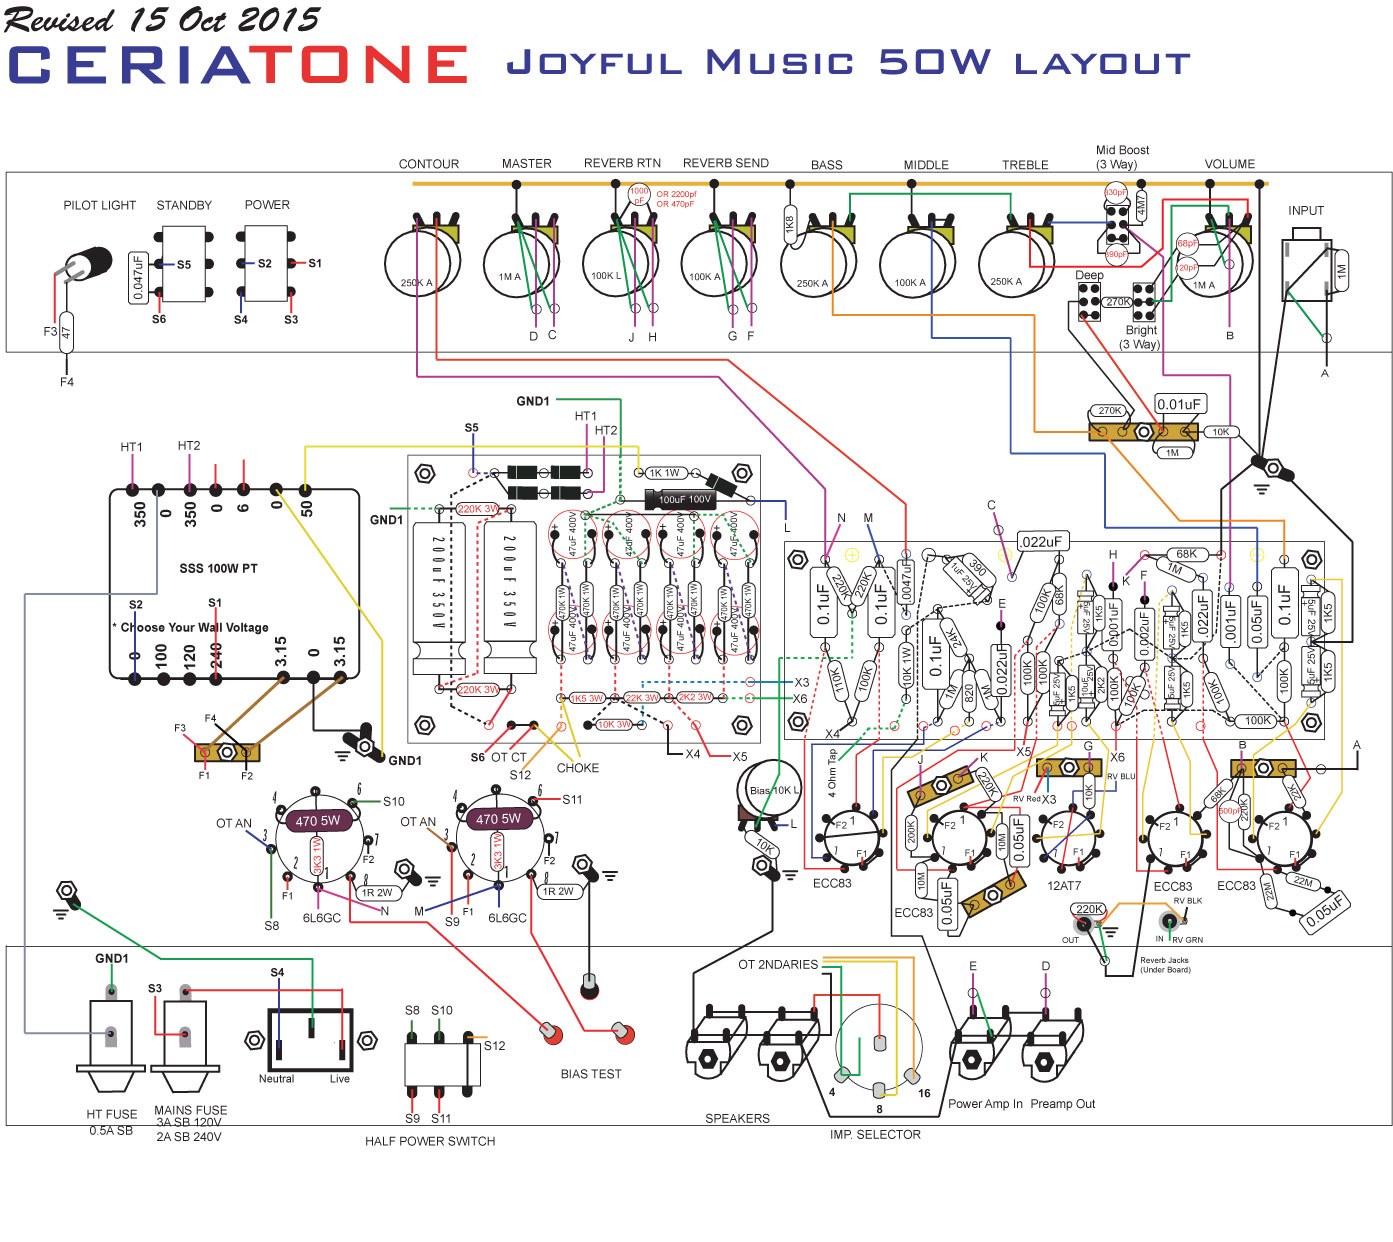 Layout, Ceriatone Joyful Music 50 Watt Download